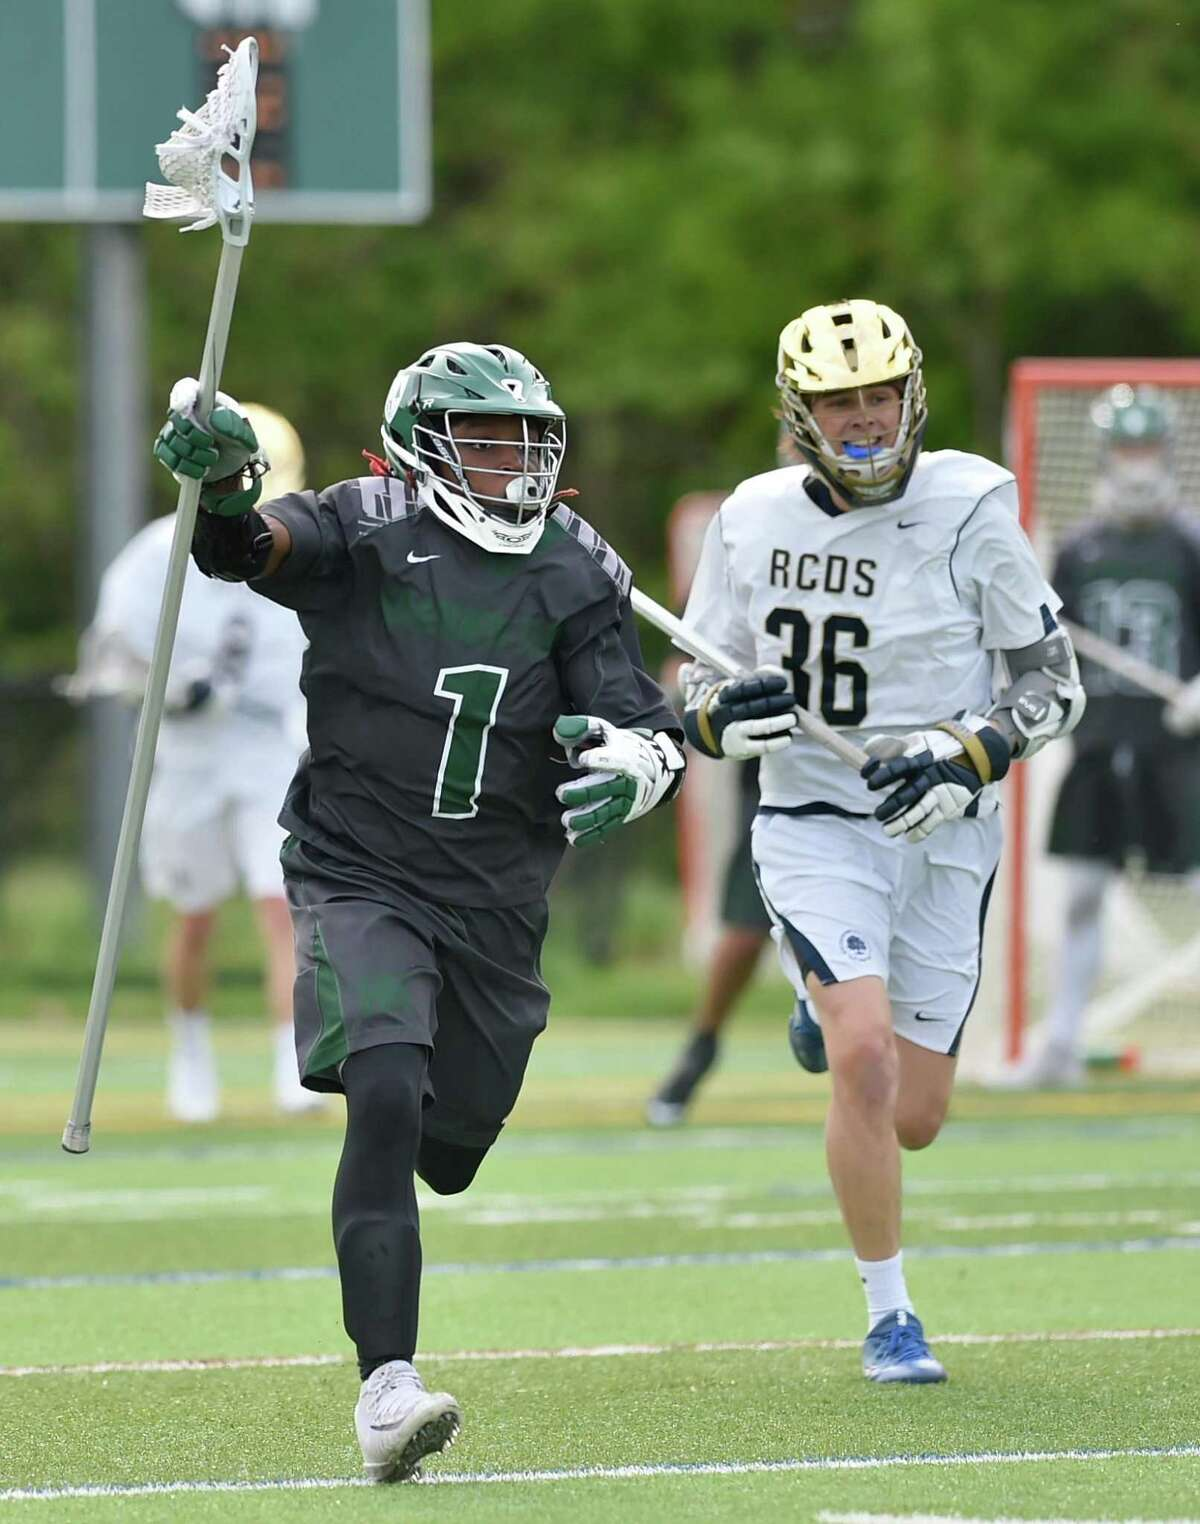 Hamden, Connecticut - Friday, May 18, 2018: Hamden Hall lacrosse vs. Rye Country Day School in the Fairchester Athletic Association championship Friday at Hamden Hall. Hamden Hall defeated Rye Country Day School 9-7.